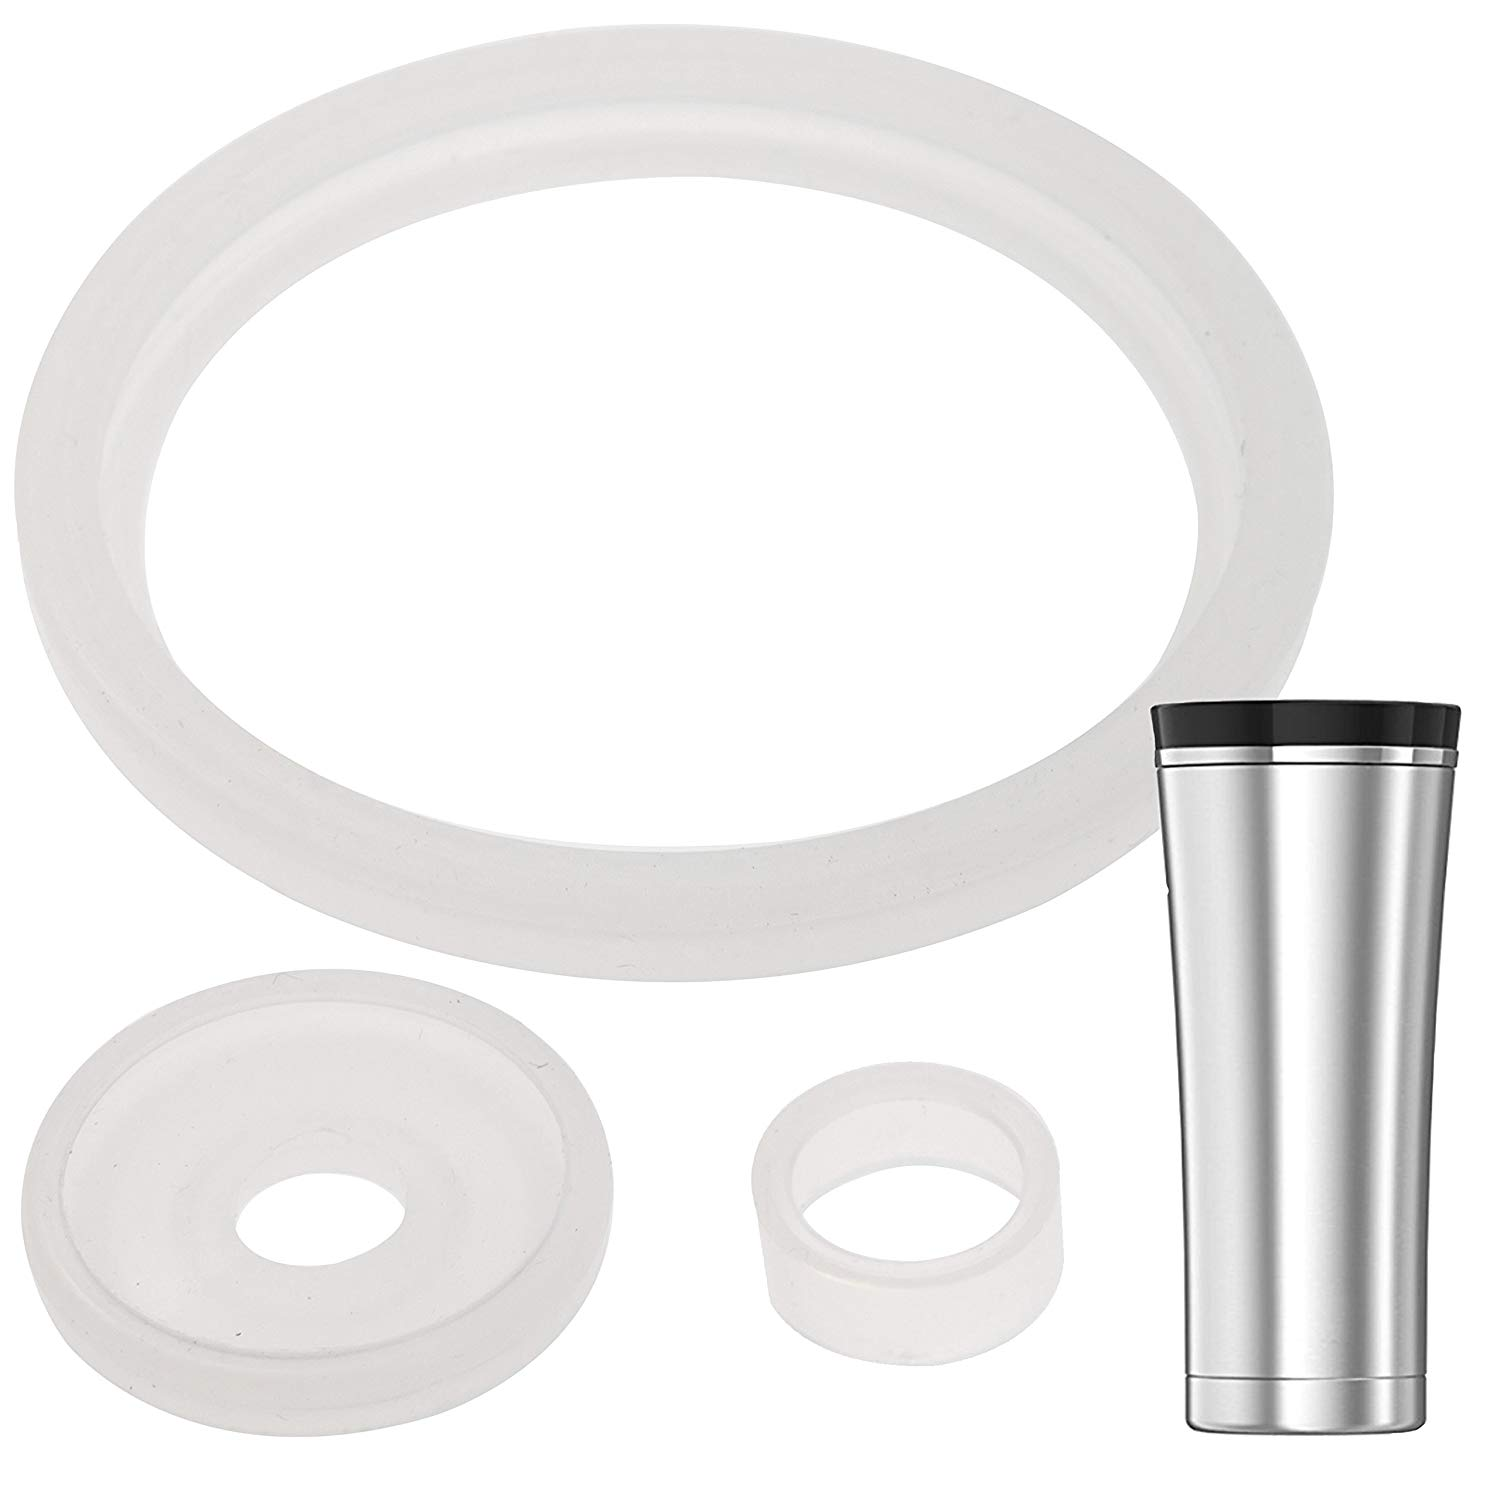 2 Sets of Thermos Sipp (TM) -Compatible 16 Ounce Travel Tumbler/Mug  Gaskets/Seals